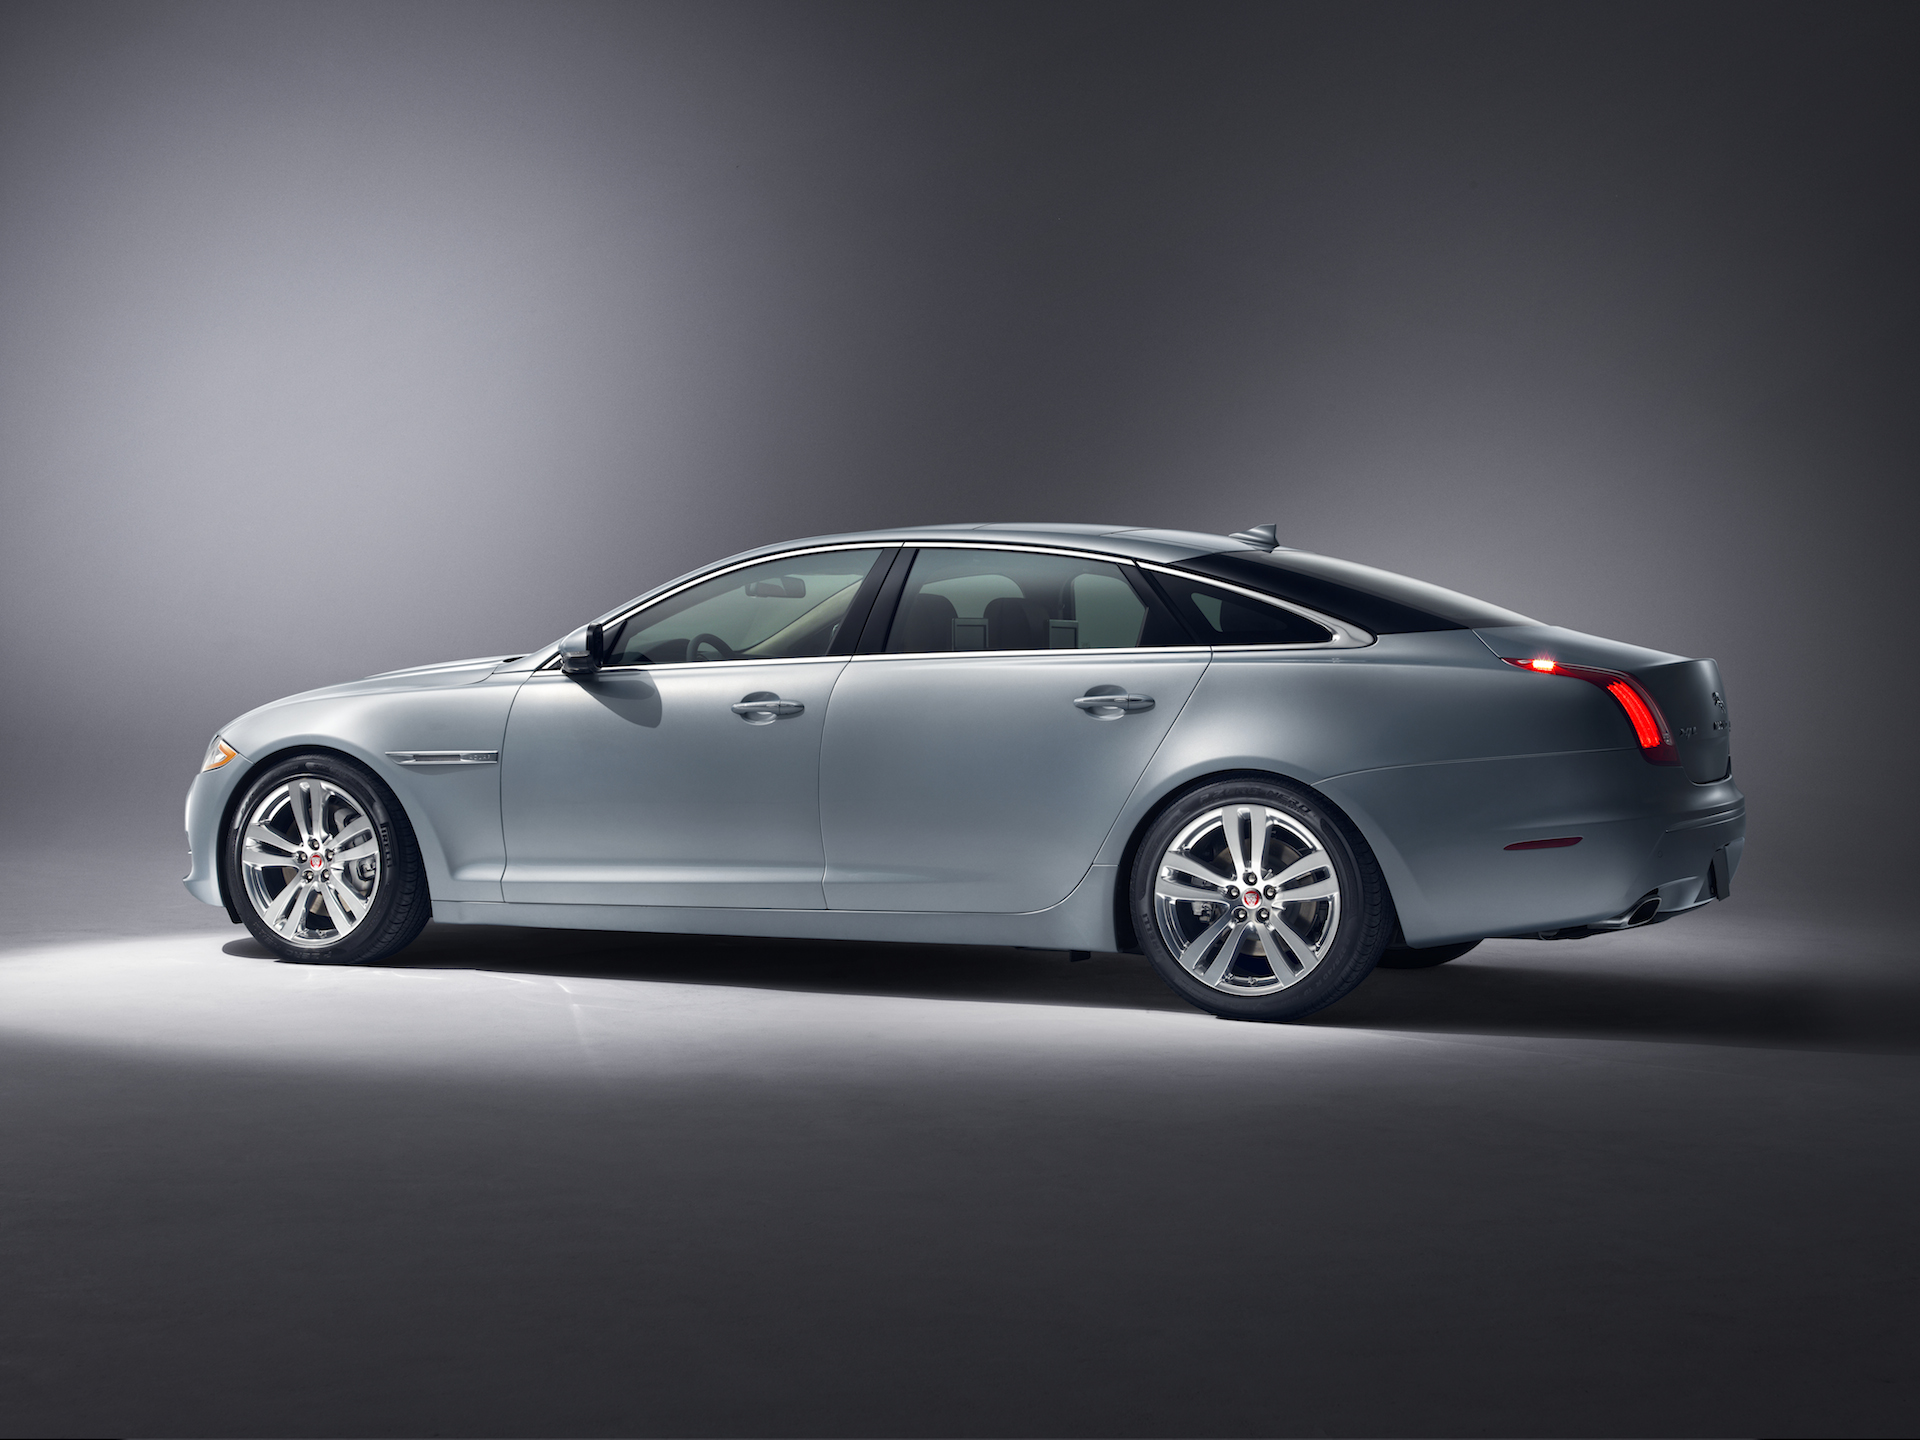 New and Used Jaguar XJ: Prices, Photos, Reviews, Specs - The Car Connection